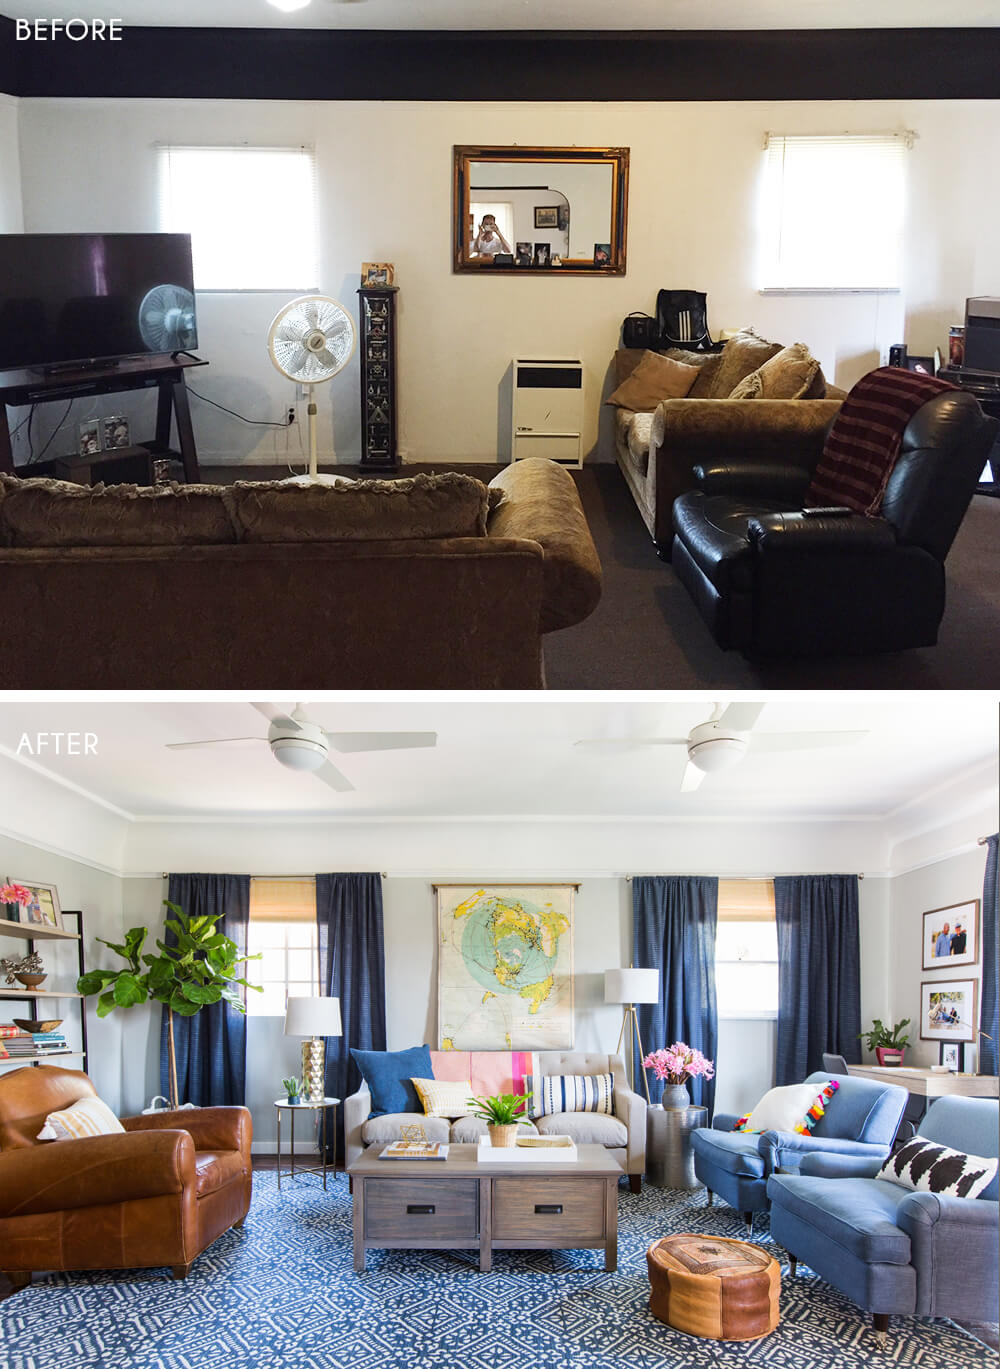 Sylvia Makeover Living Room Target Before_After 3